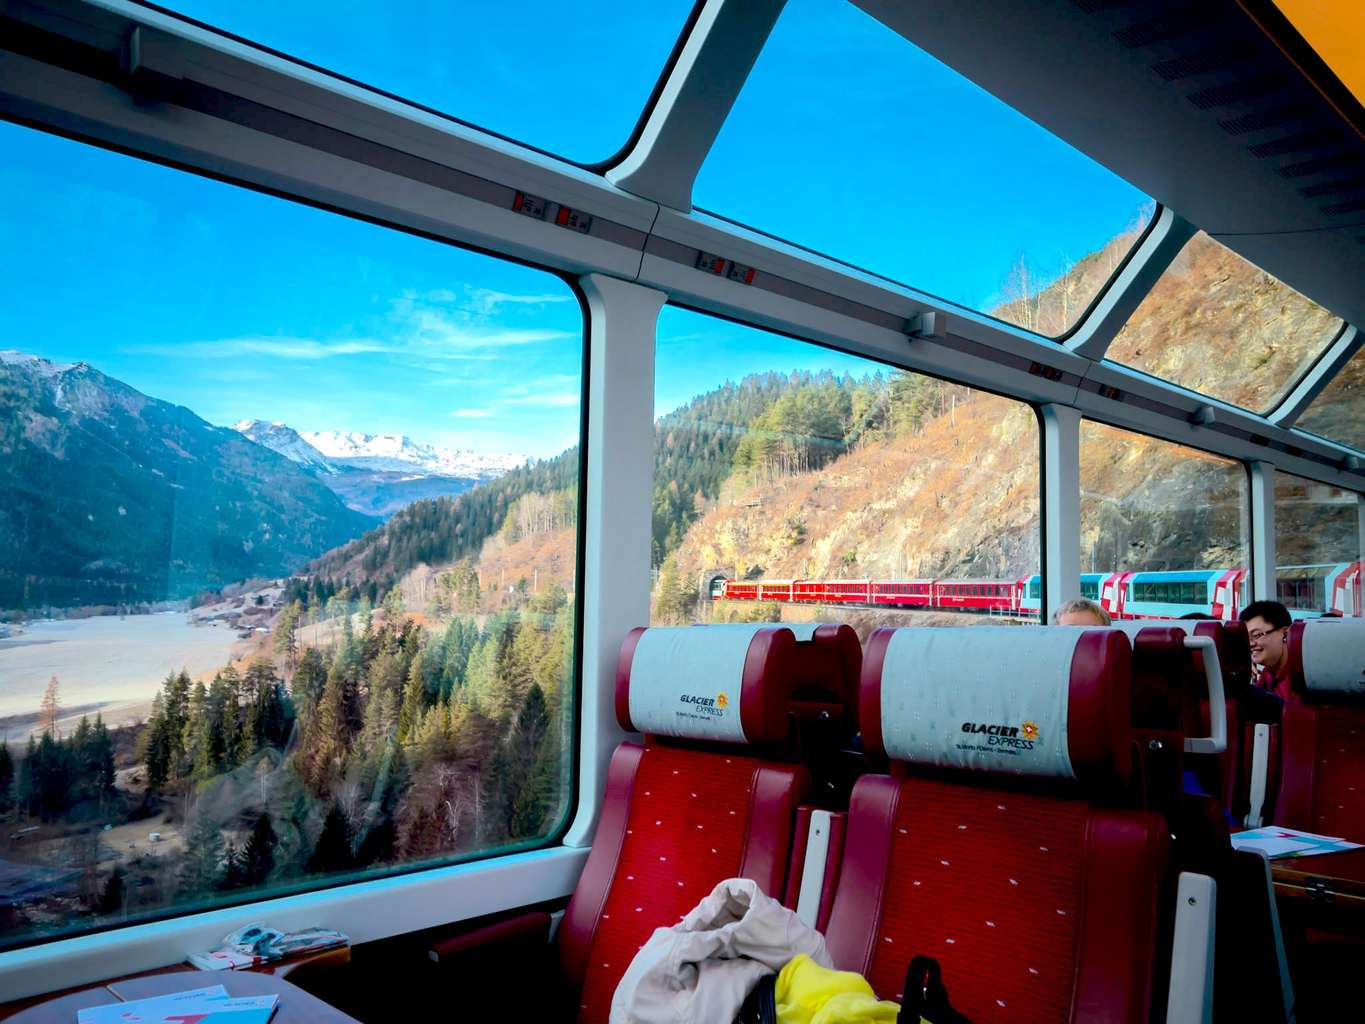 Beautiful scenery on the Glacier Express